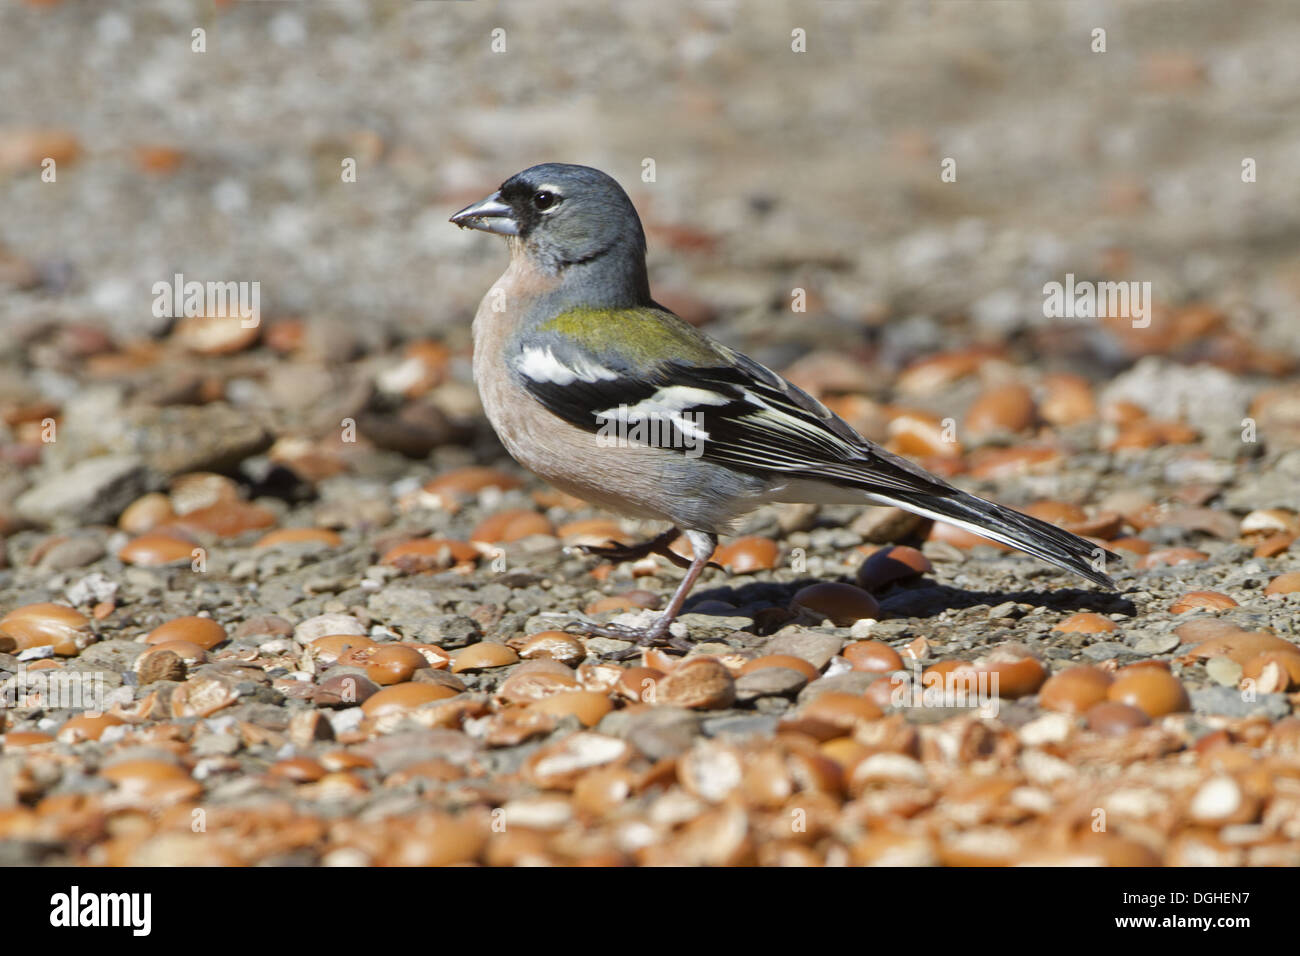 Common Chaffinch (Fringilla coelebs africana) North African subspecies, adult male, feeding on ground, Morocco, March - Stock Image